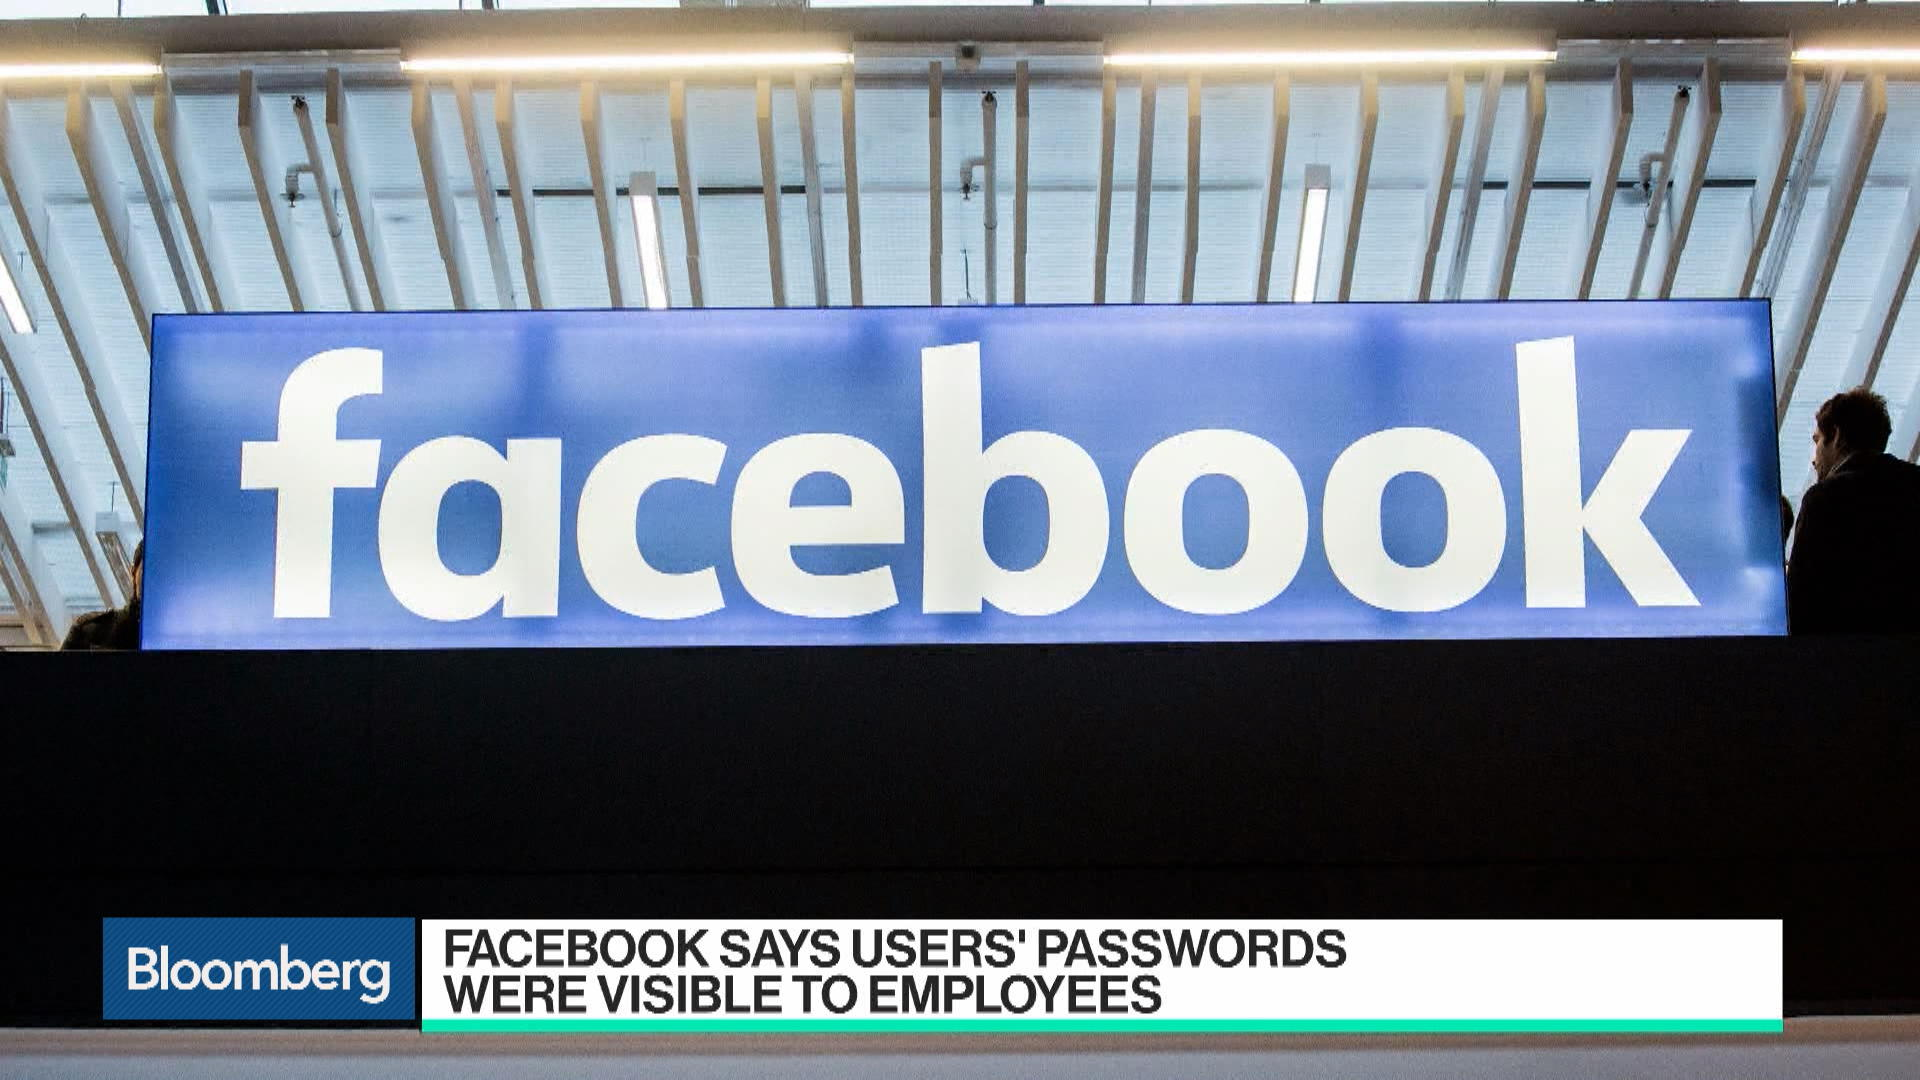 Facebook Discloses Flaw That Made Users' Passwords Visible to Employees